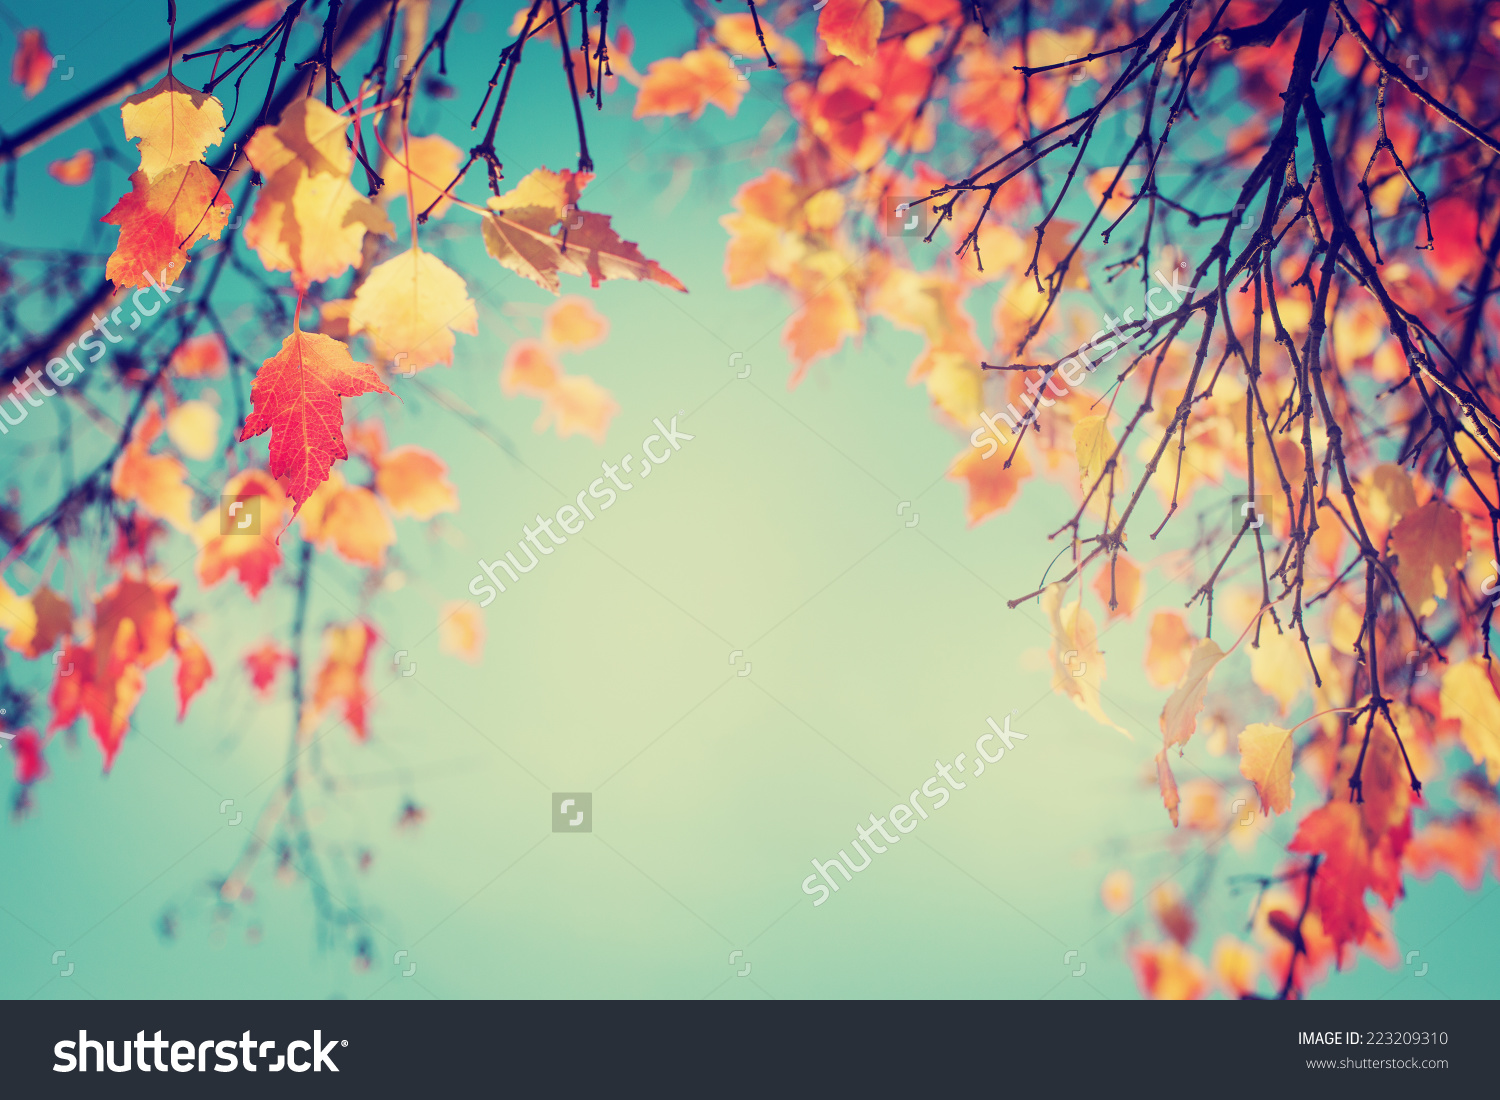 stock-photo-colorful-foliage-in-the-autumn-park-autumn-leaves-sky ...